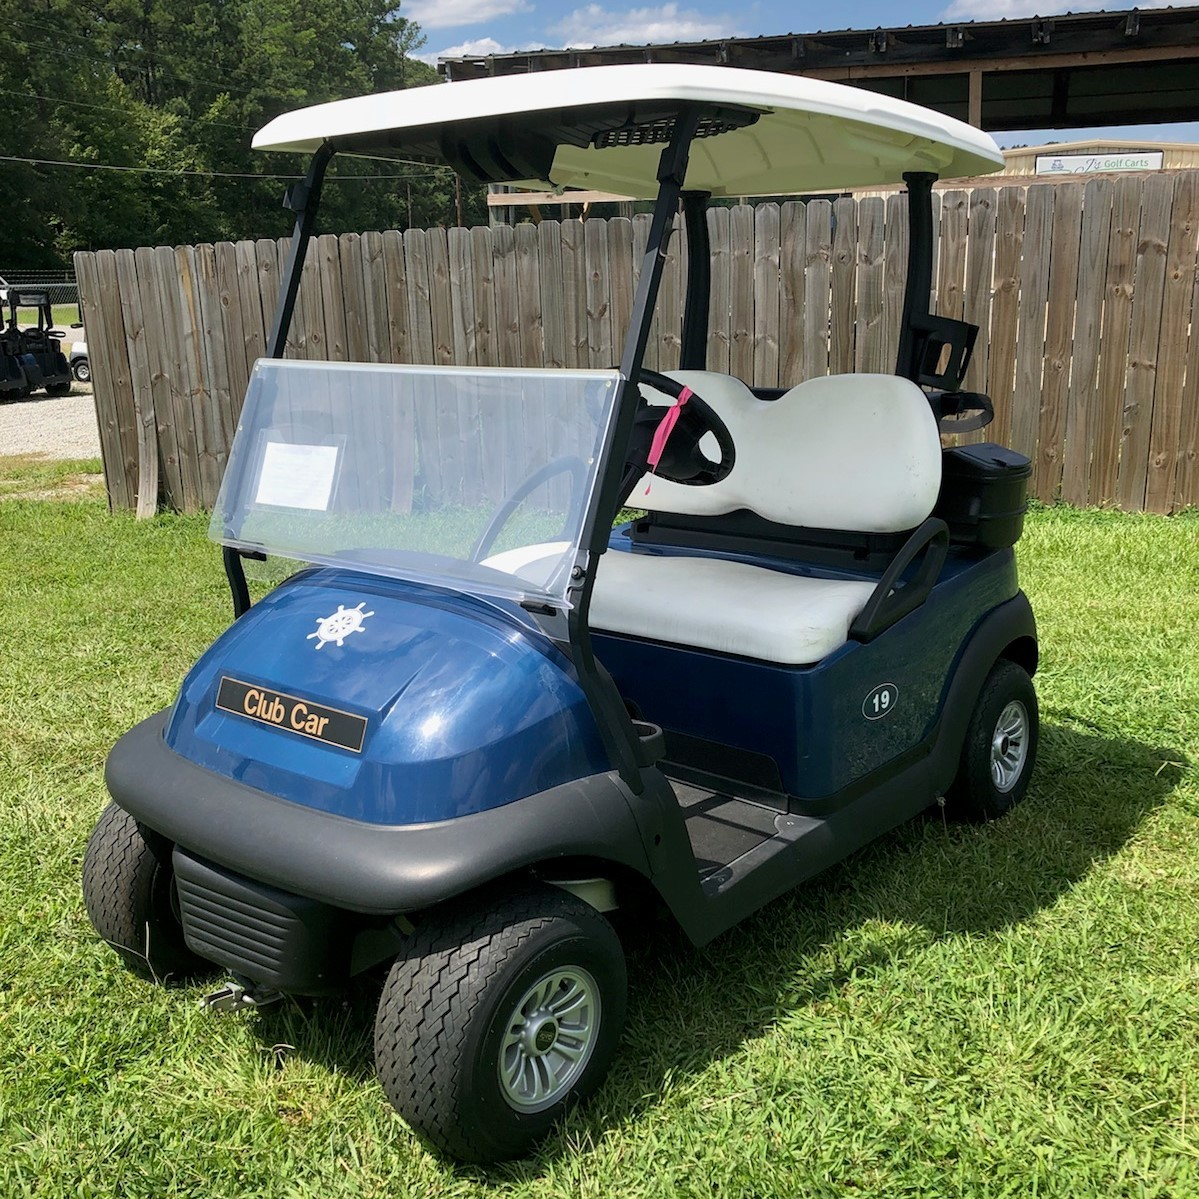 J S Golf Carts New And Used Golf Carts For Sale In